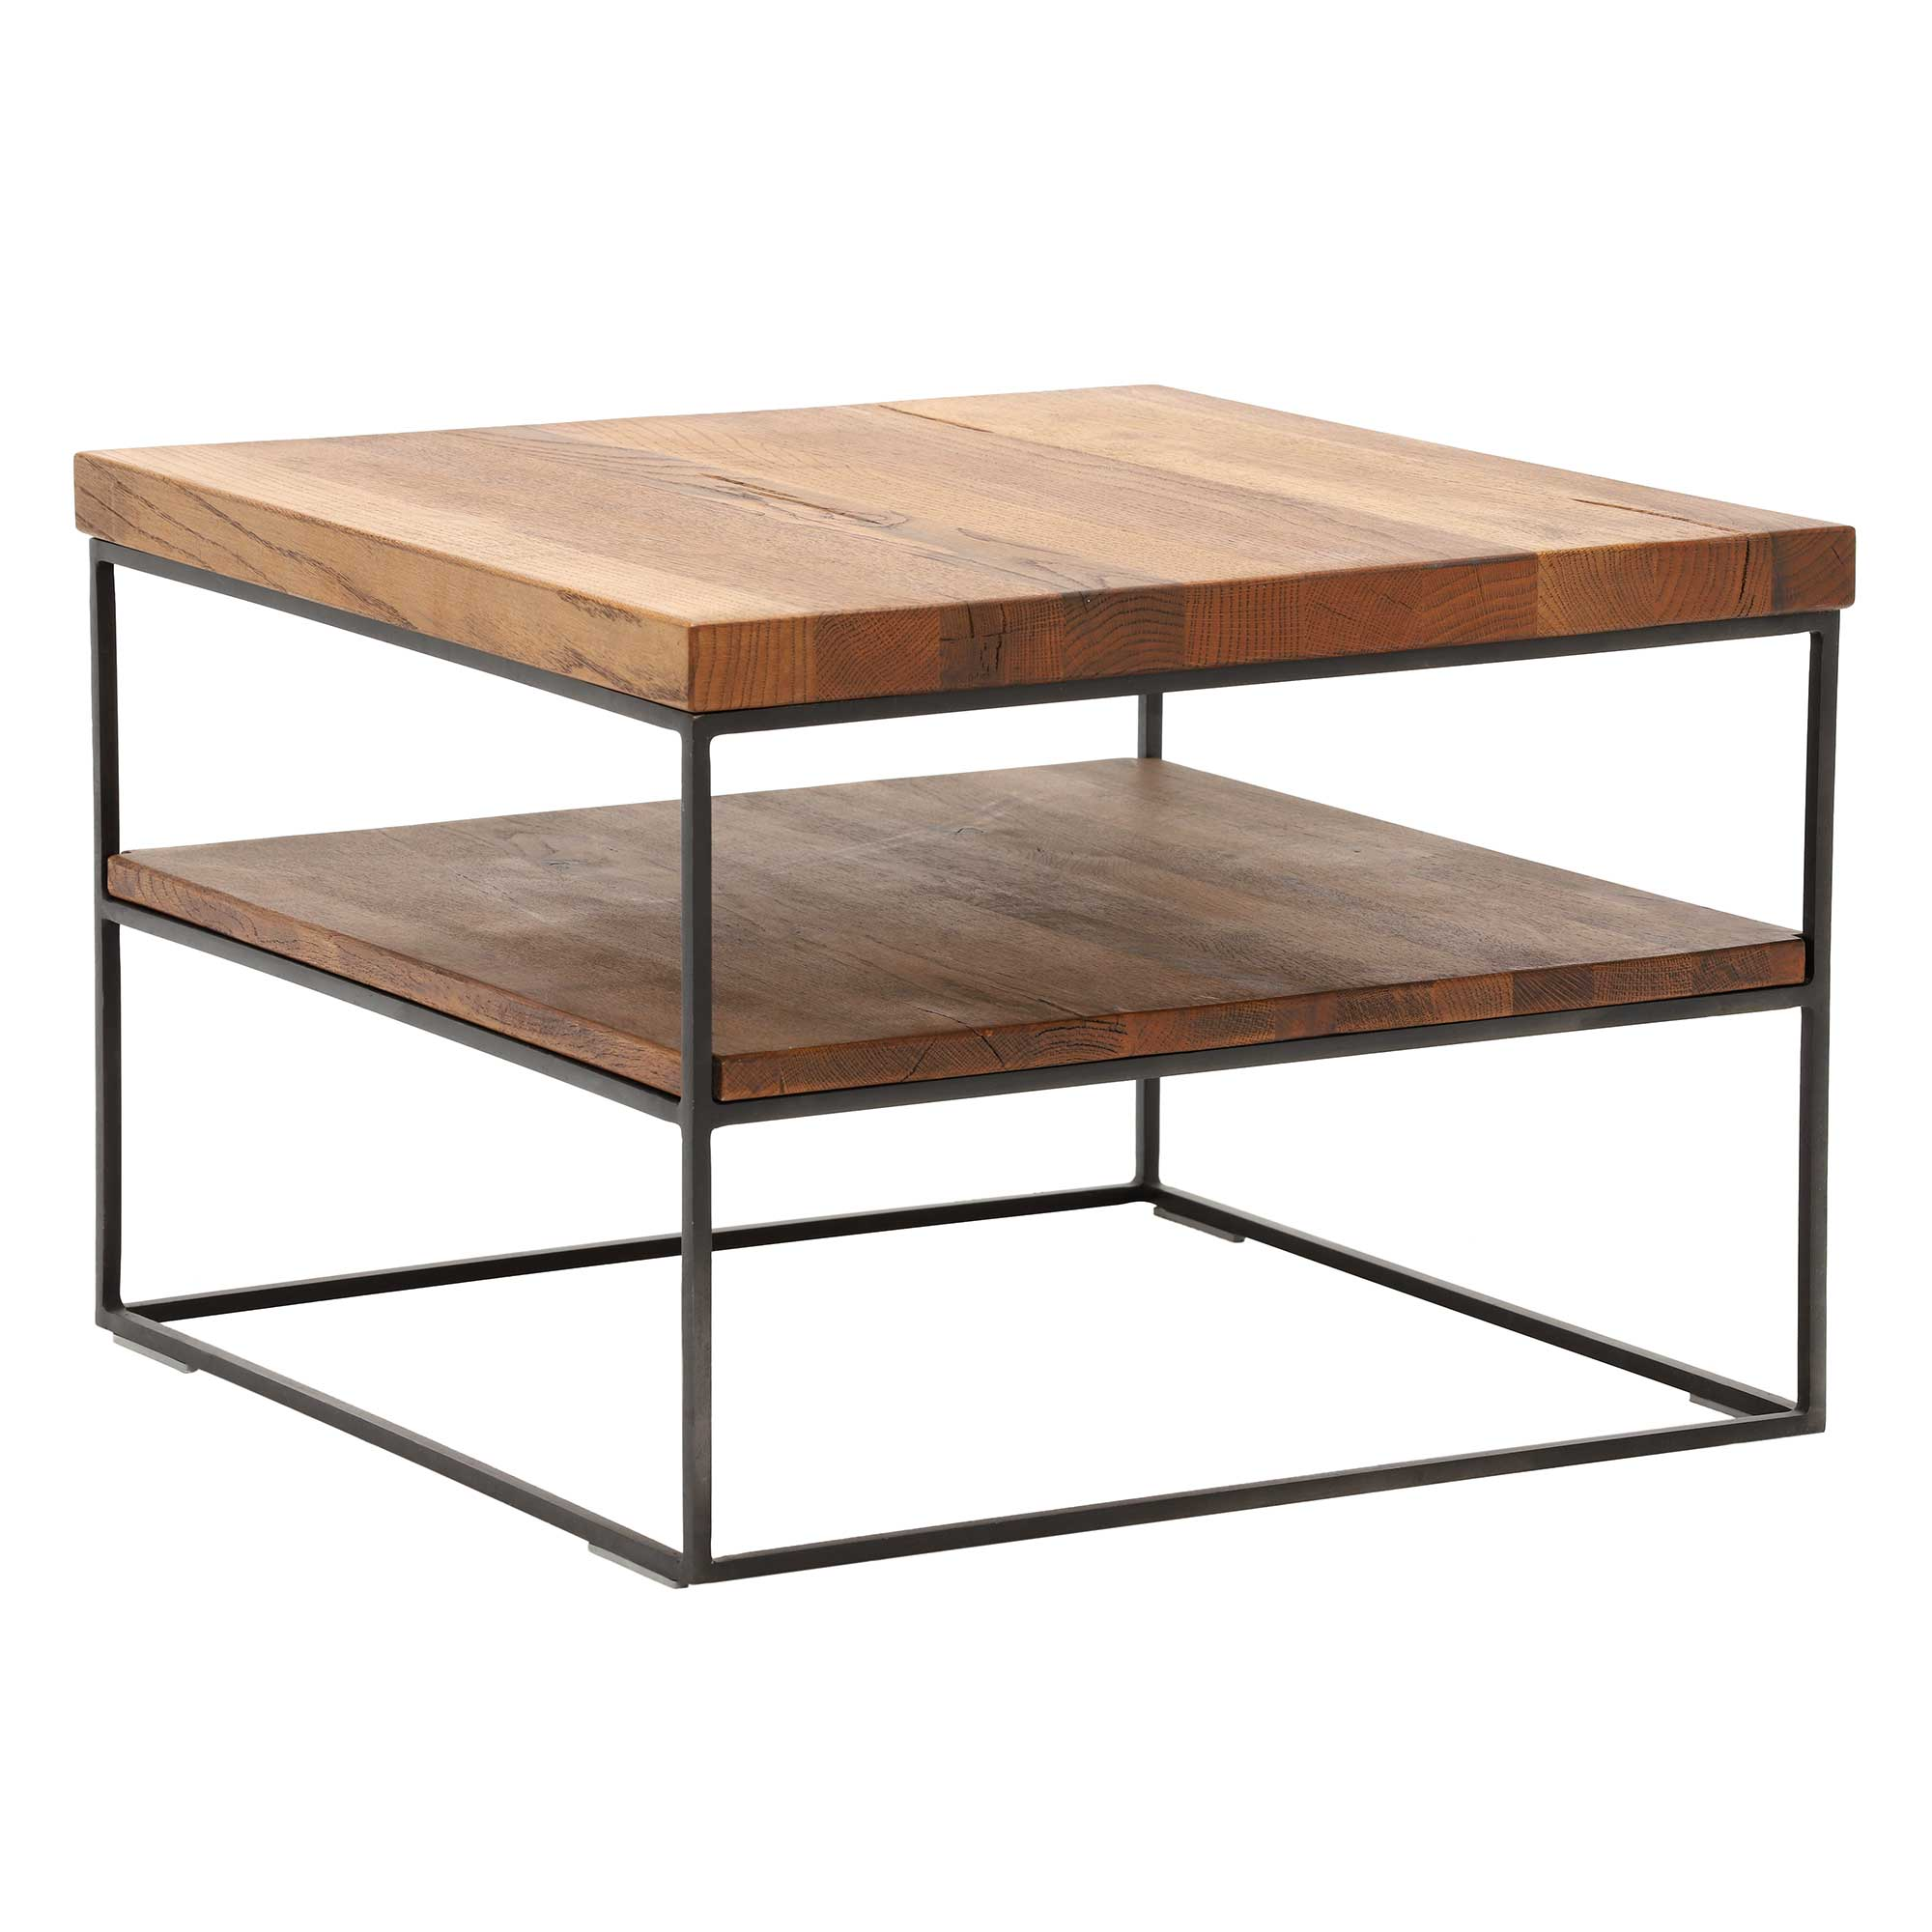 CORMAR OILED OAK LAMP TABLE - L60cm x D60cm x H60cm. ANGLE VIEW